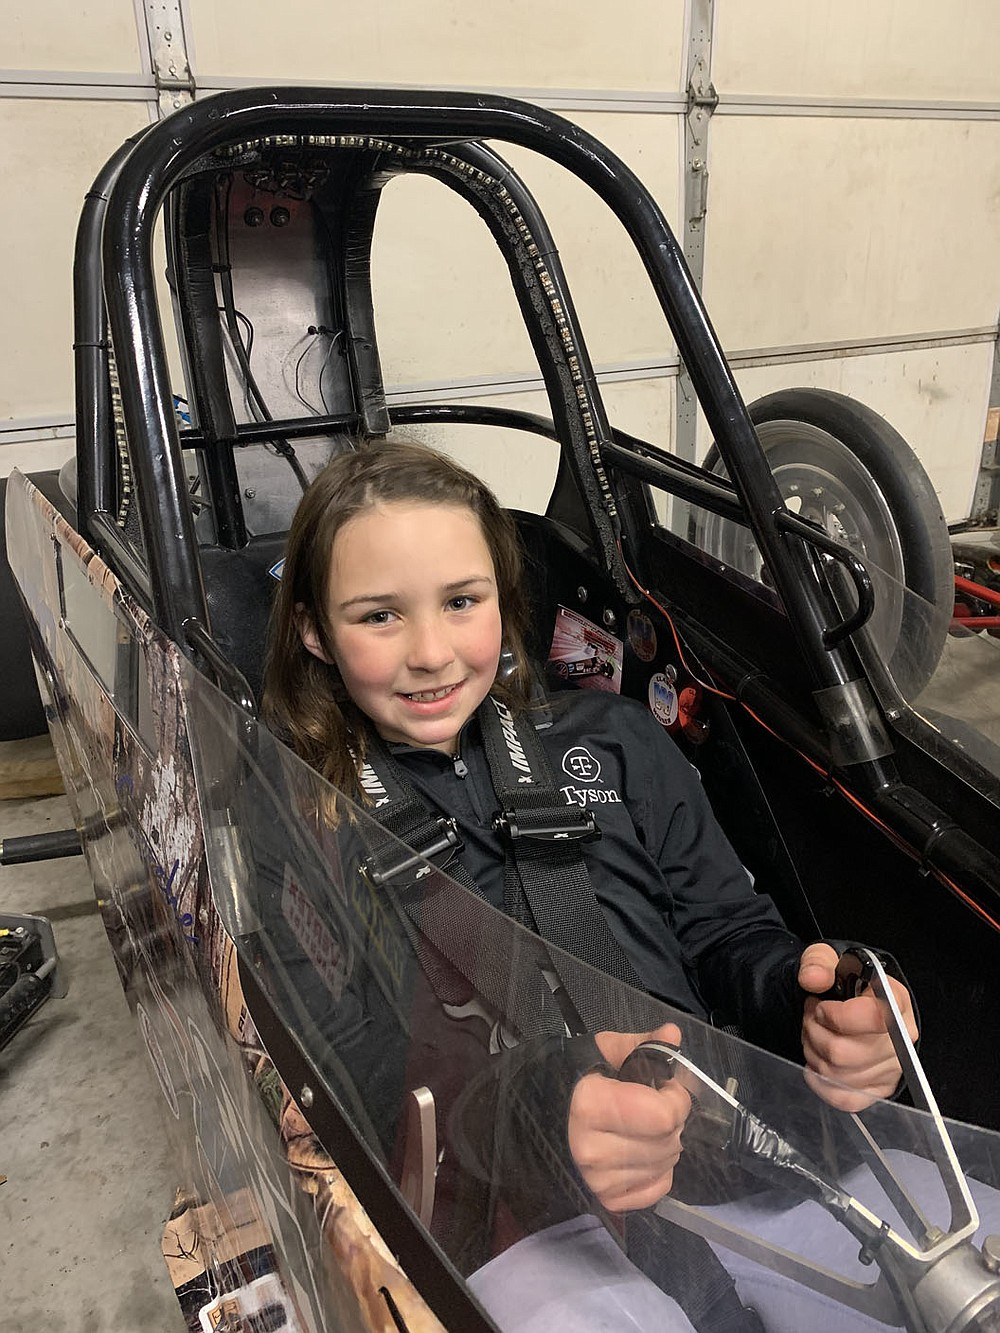 SALLY CARROLL/SPECIAL TO MCDONALD COUNTY PRESS Harper Jensen, 9, loves to drag race. She is guided by her grandfather, Kenneth Trussell, who helps her. Harper's mom, Deni, and cousin, Tristan, also race alongside her.